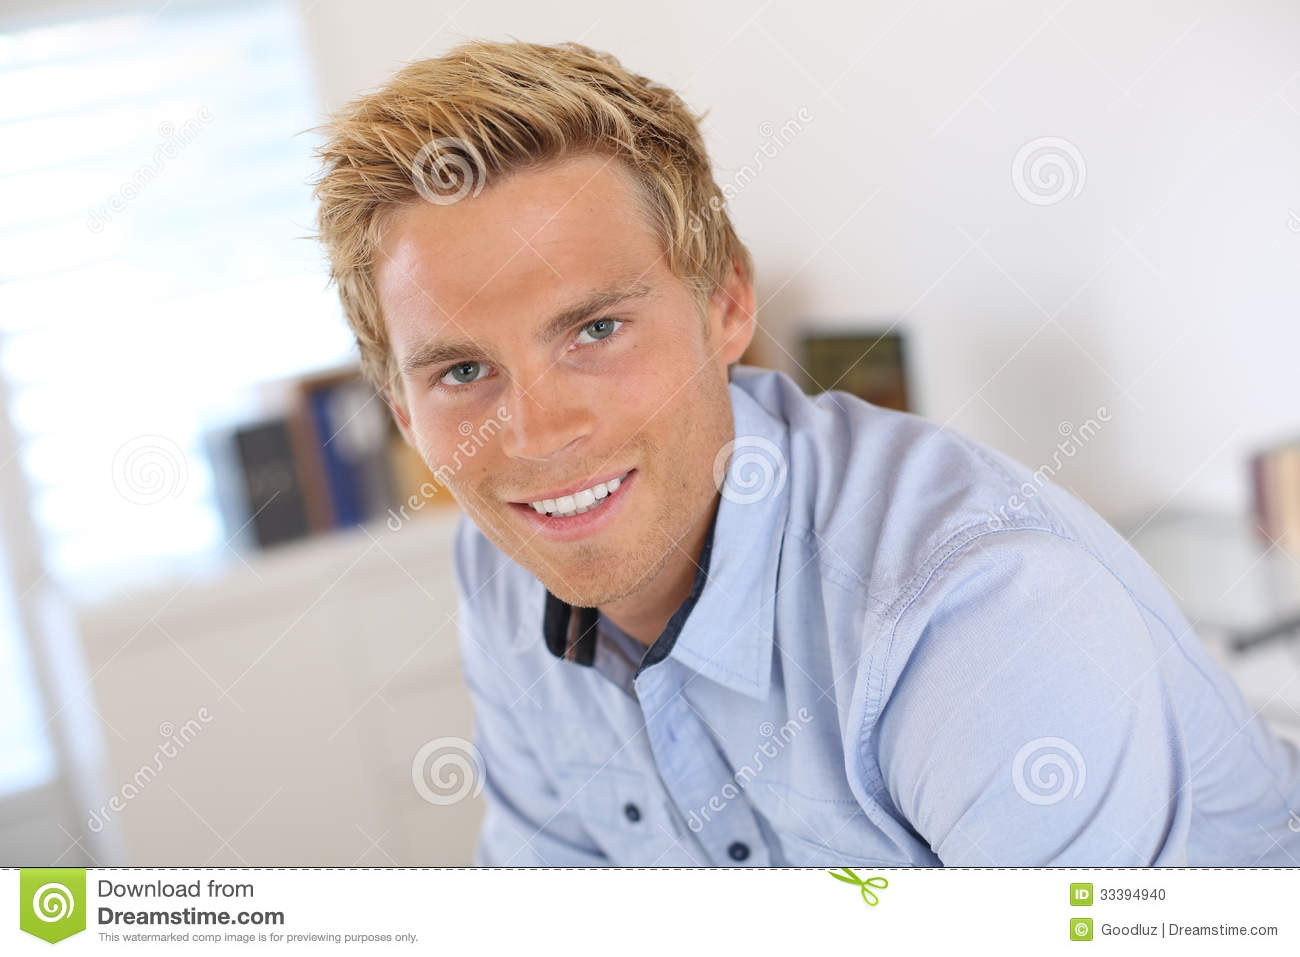 13 boy with blonde hair and blue eyes